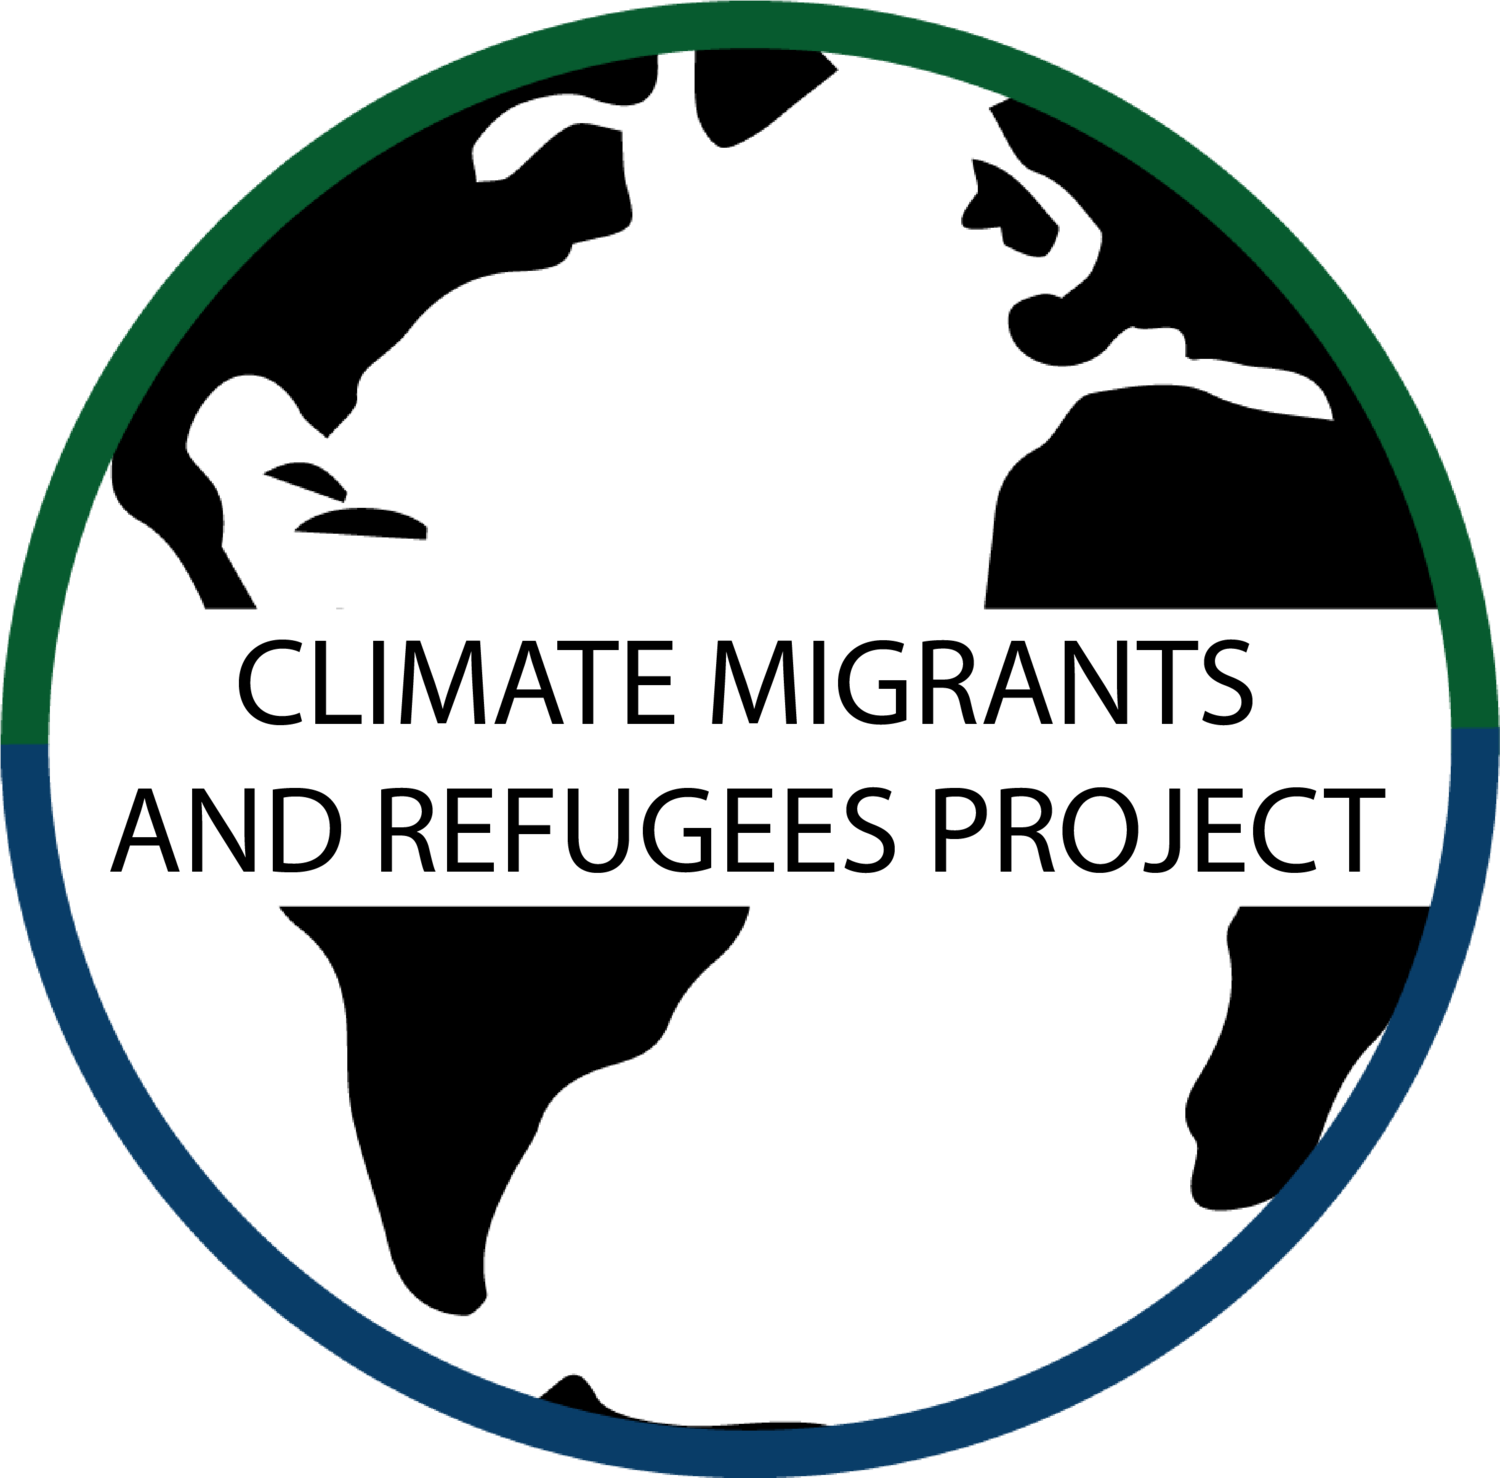 The migrants and refugees. Environment clipart climate change